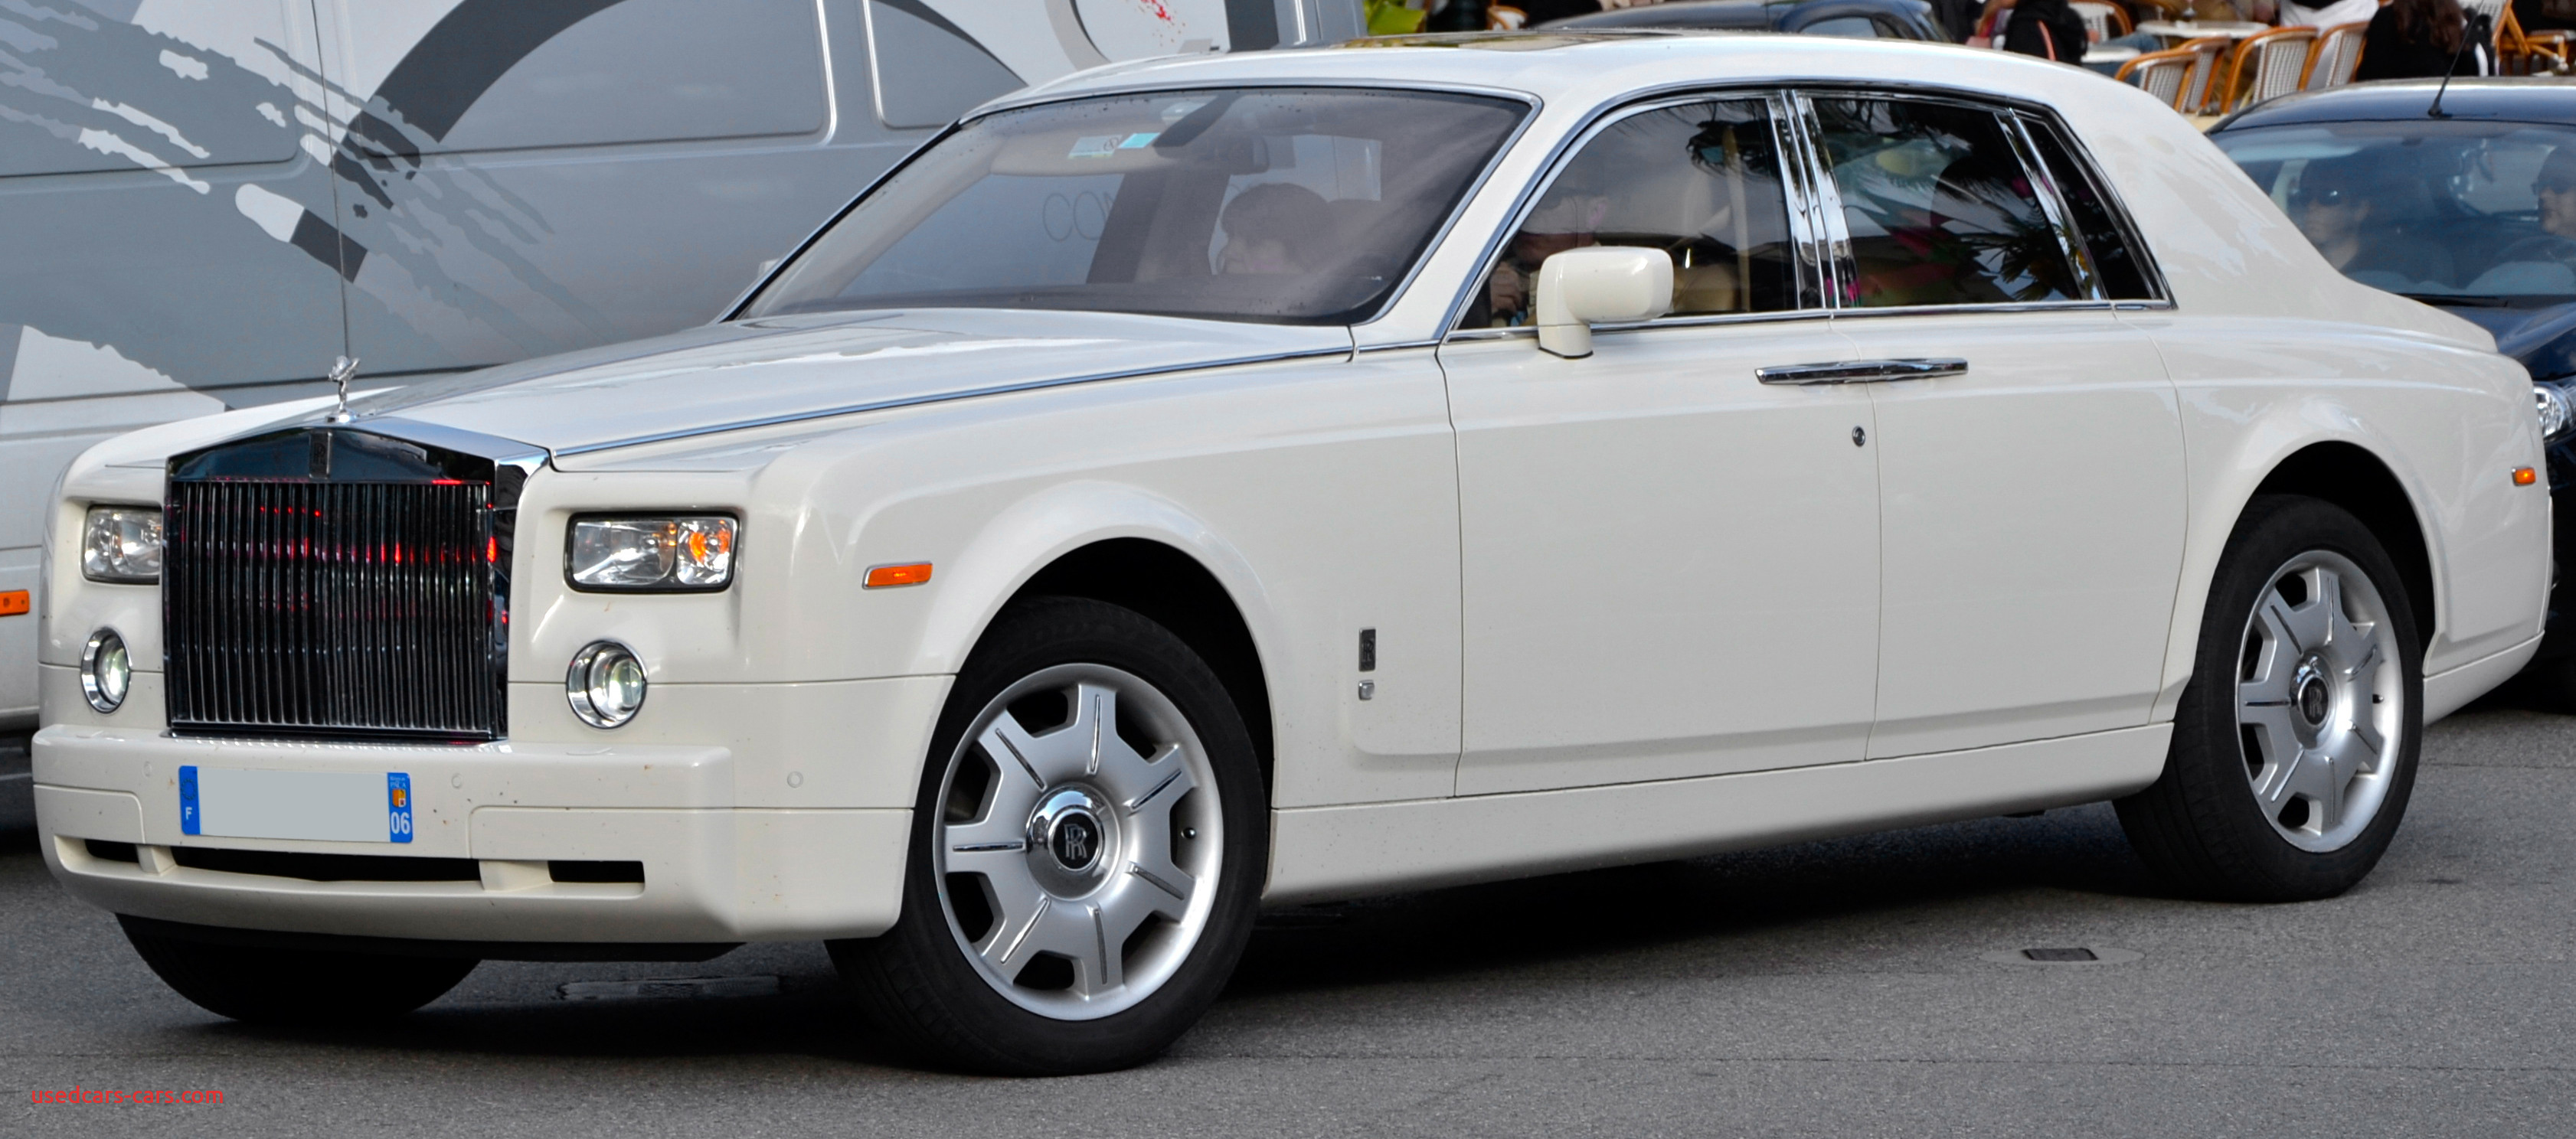 Fantom Works New Rolls Royce Phantom Vii